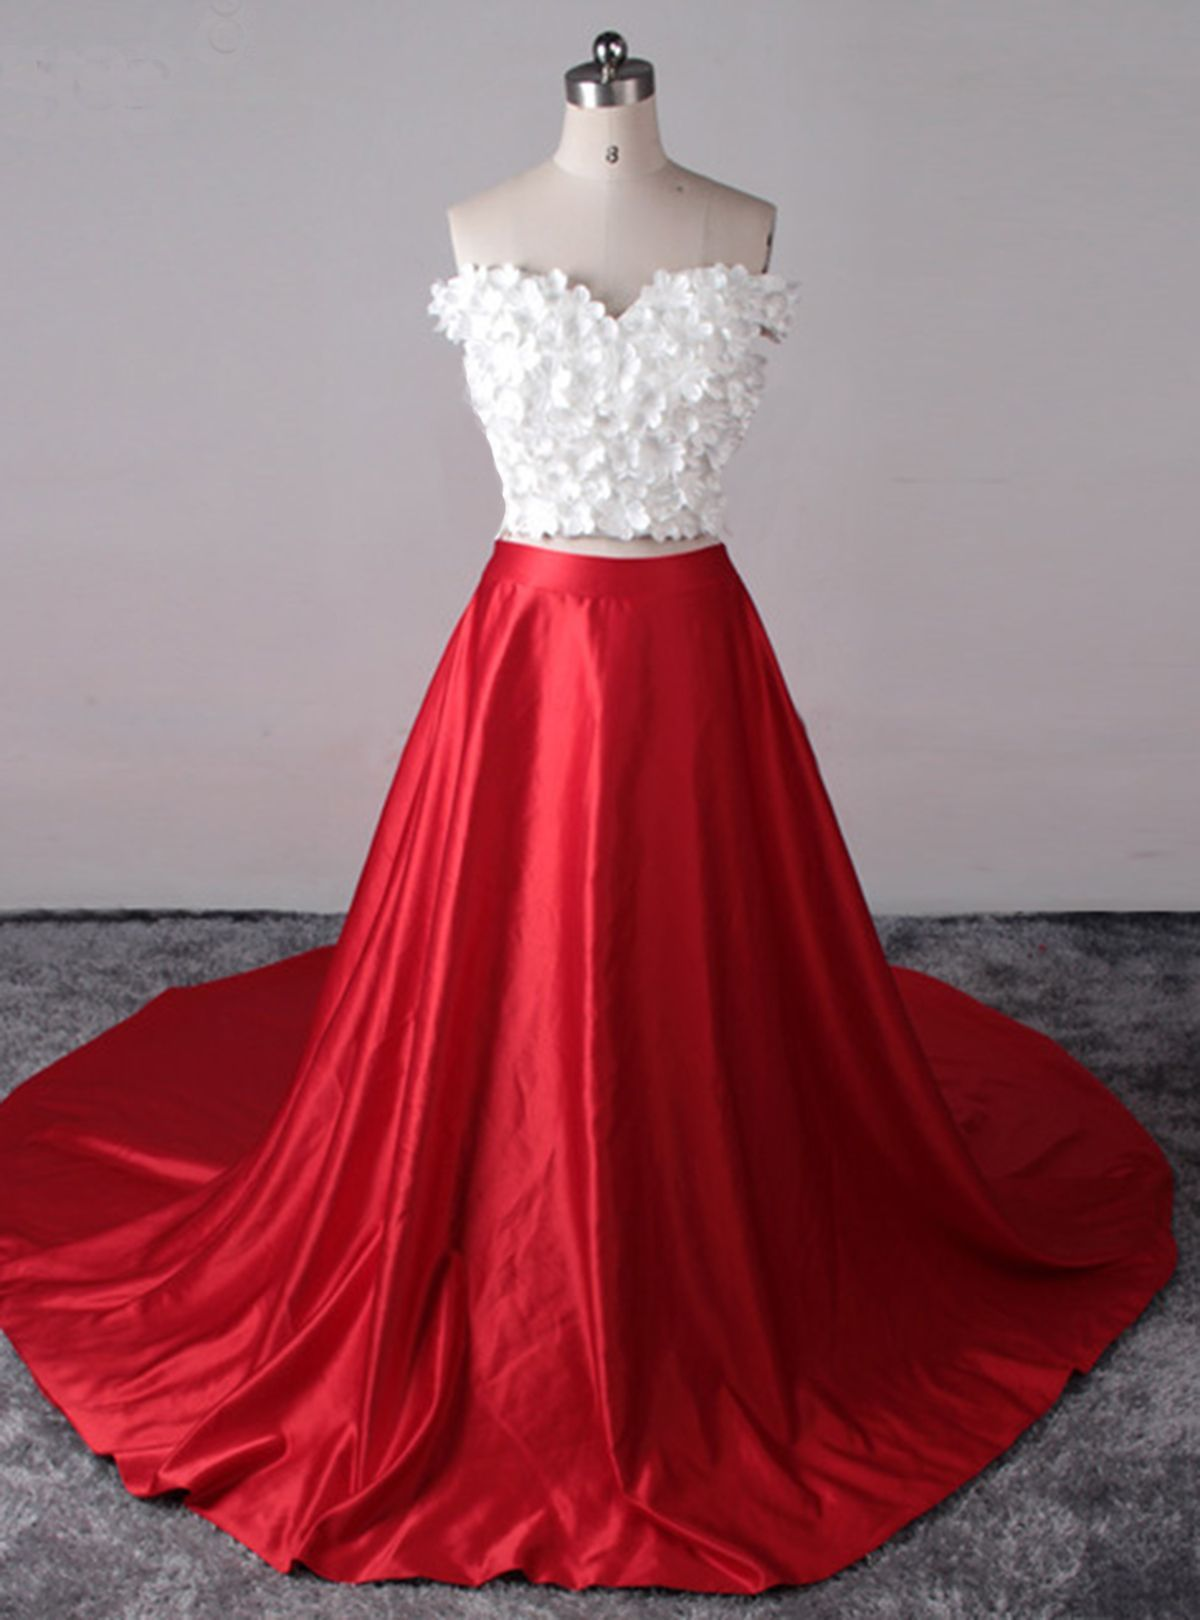 White top red satin two pieces prom dress red lipstick bold lashes